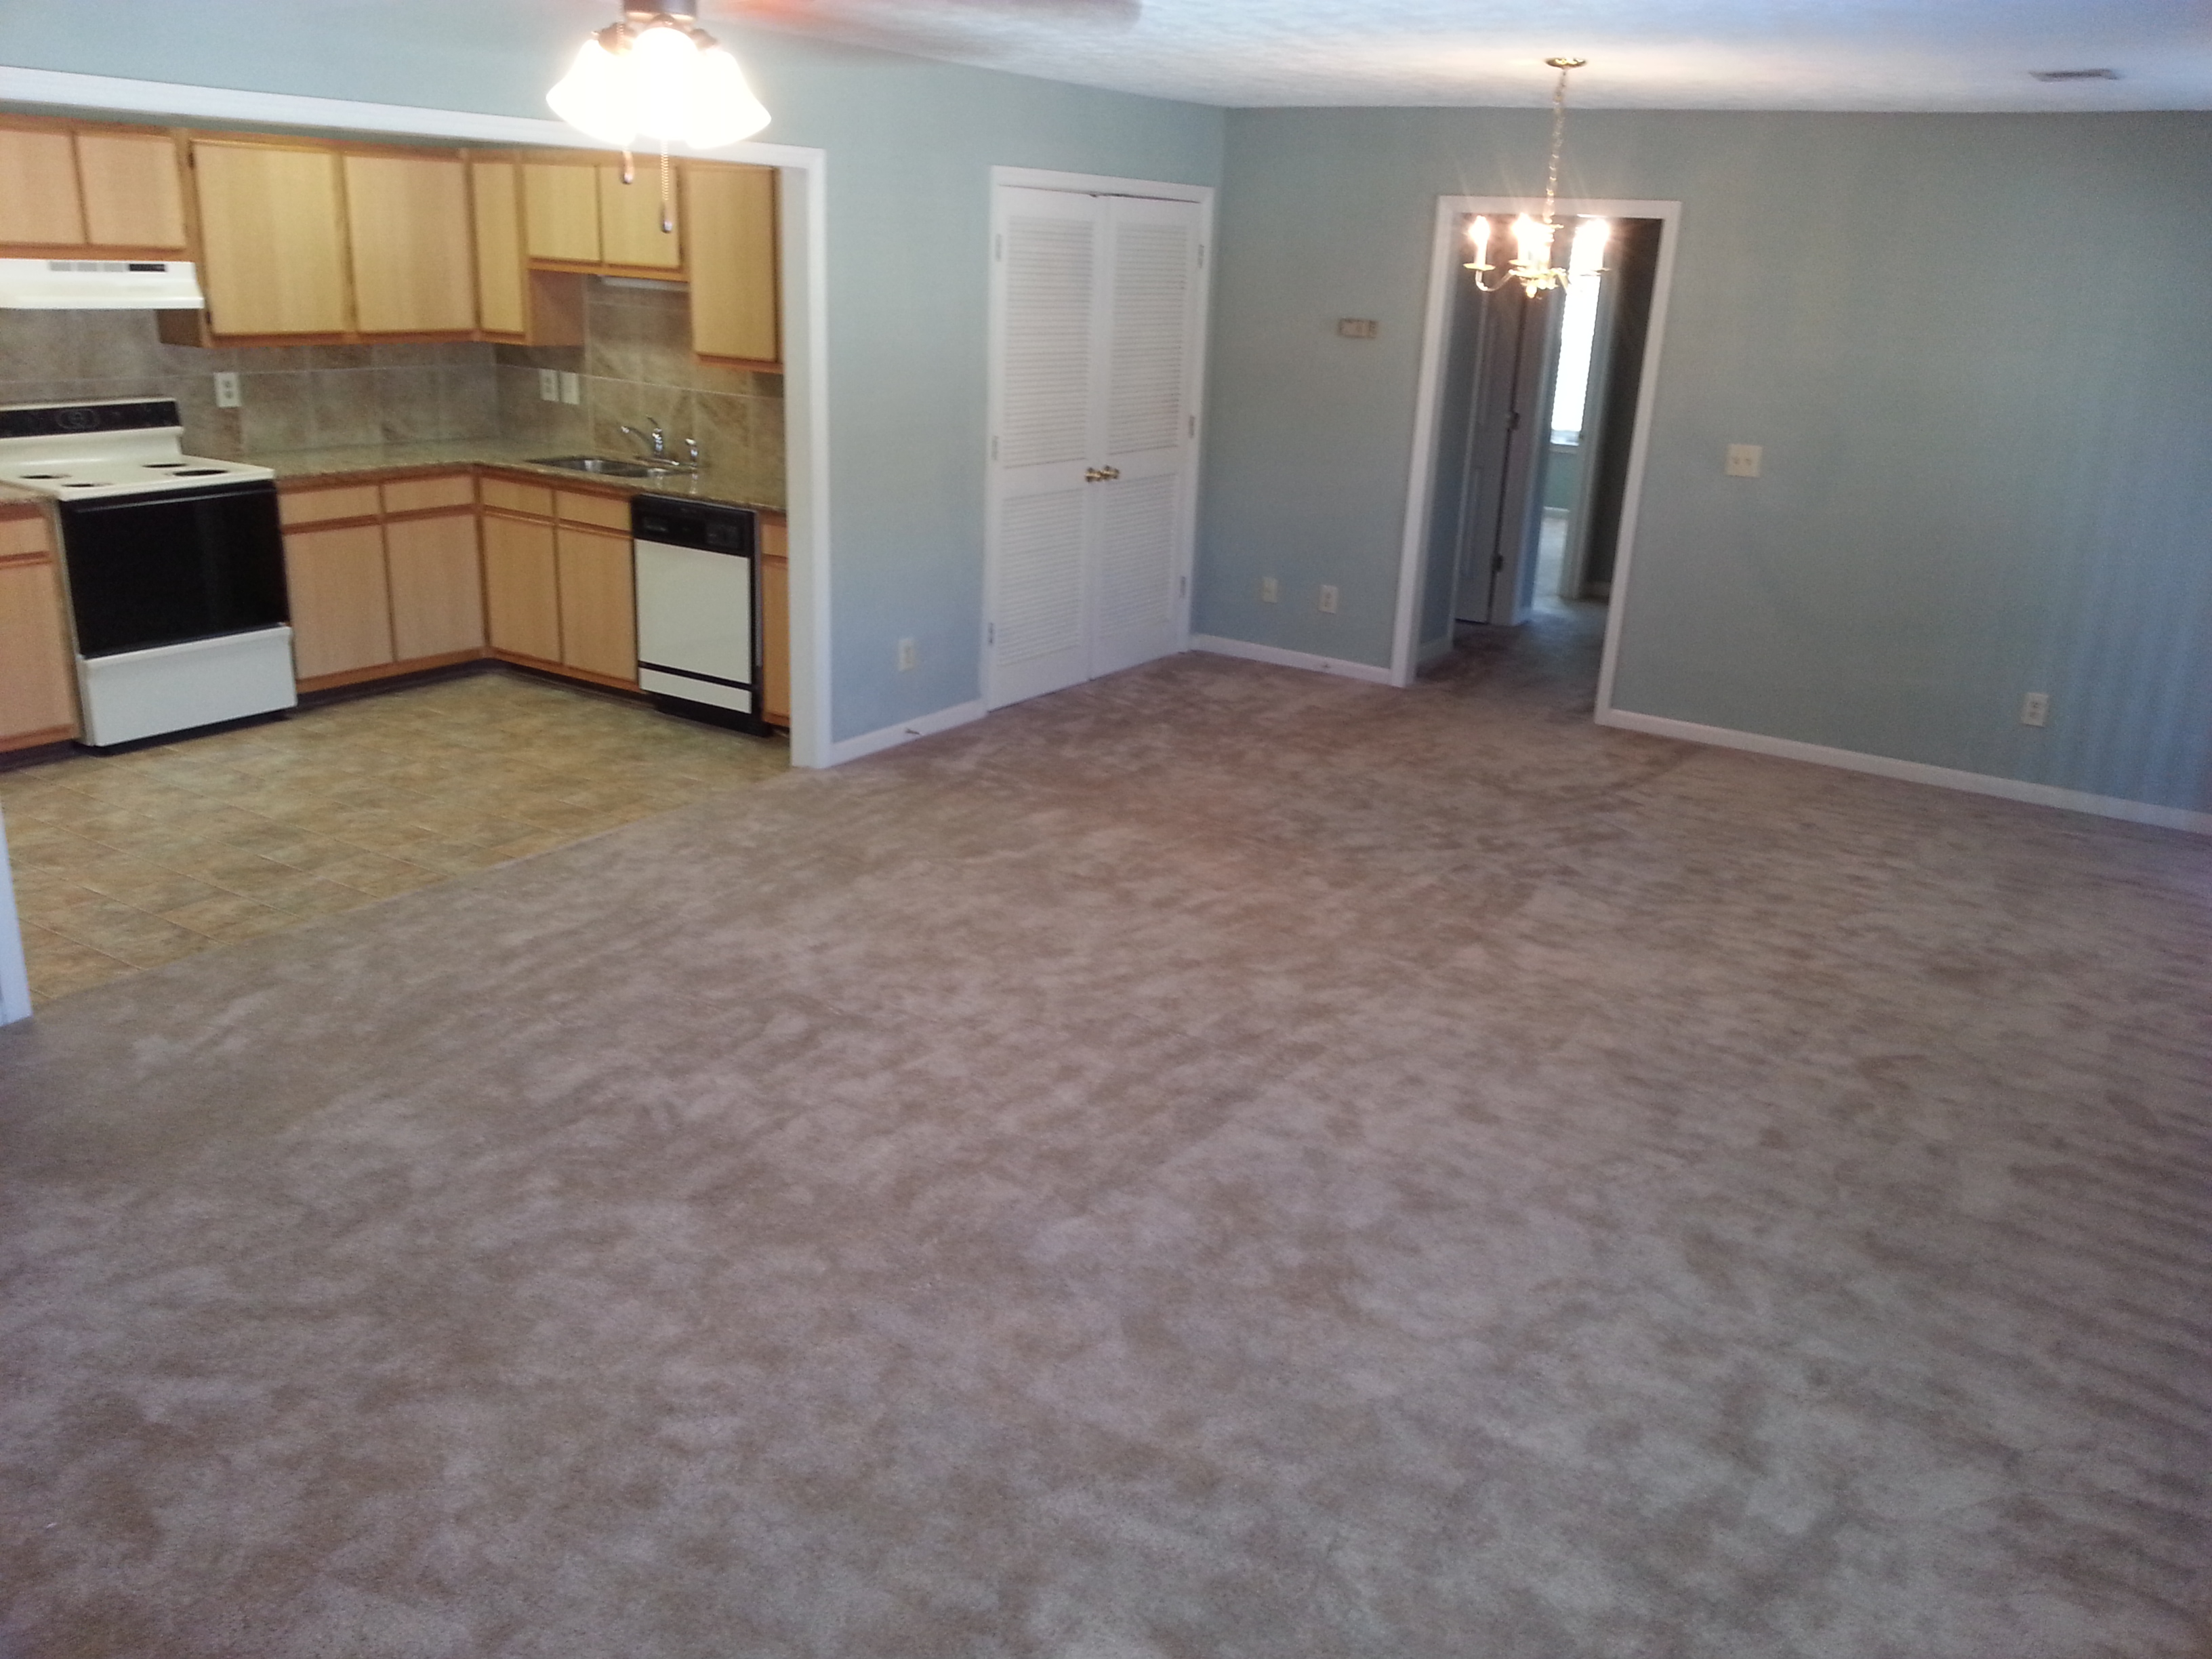 OPEN FLOOR PLAN IN OUR 2bd/2ba NEW 2 TONE COLOR PLUS GRANITE